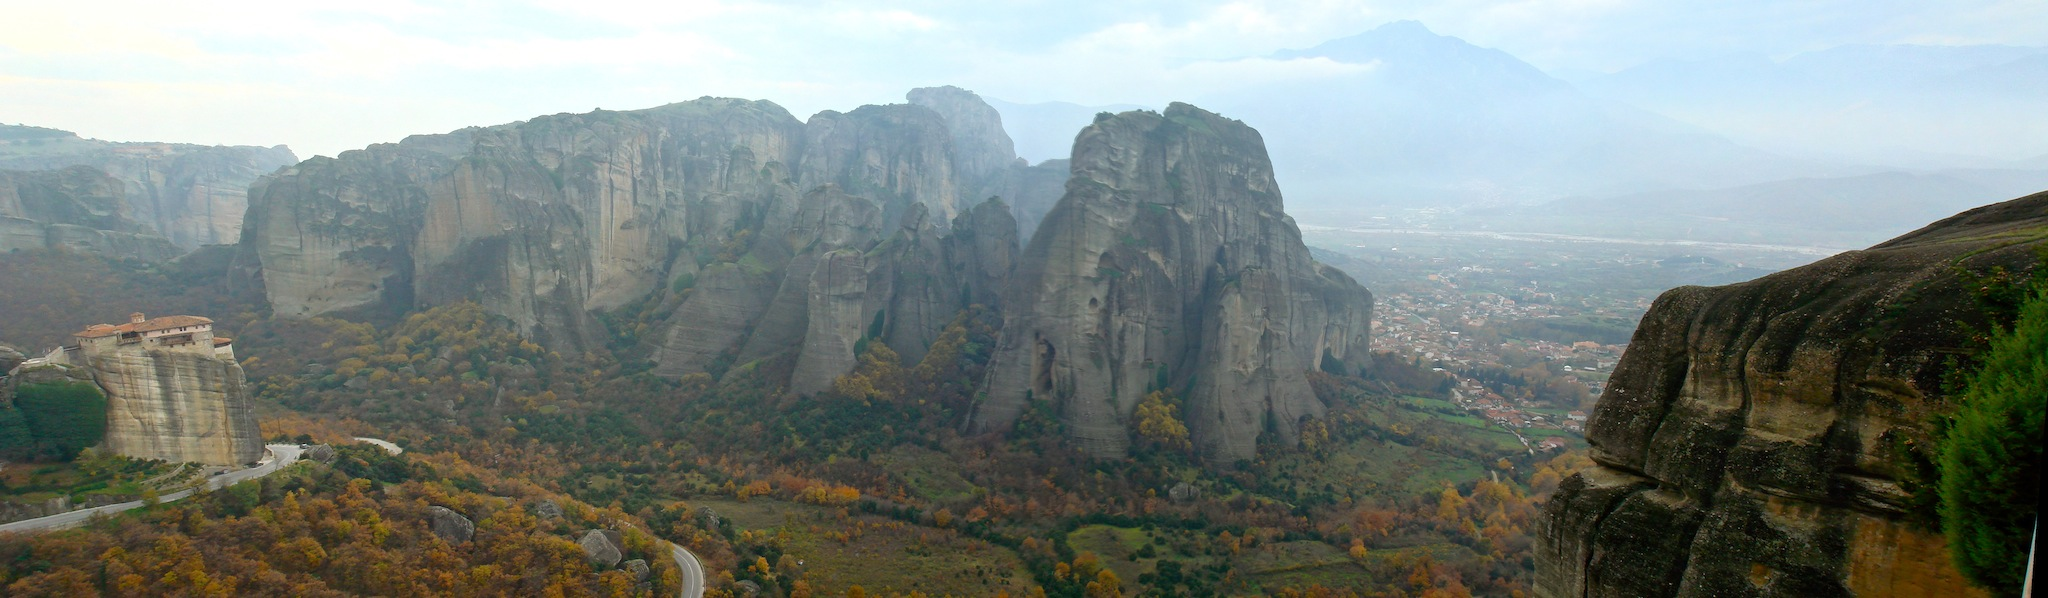 Roussanou,_Meteora,_Greece